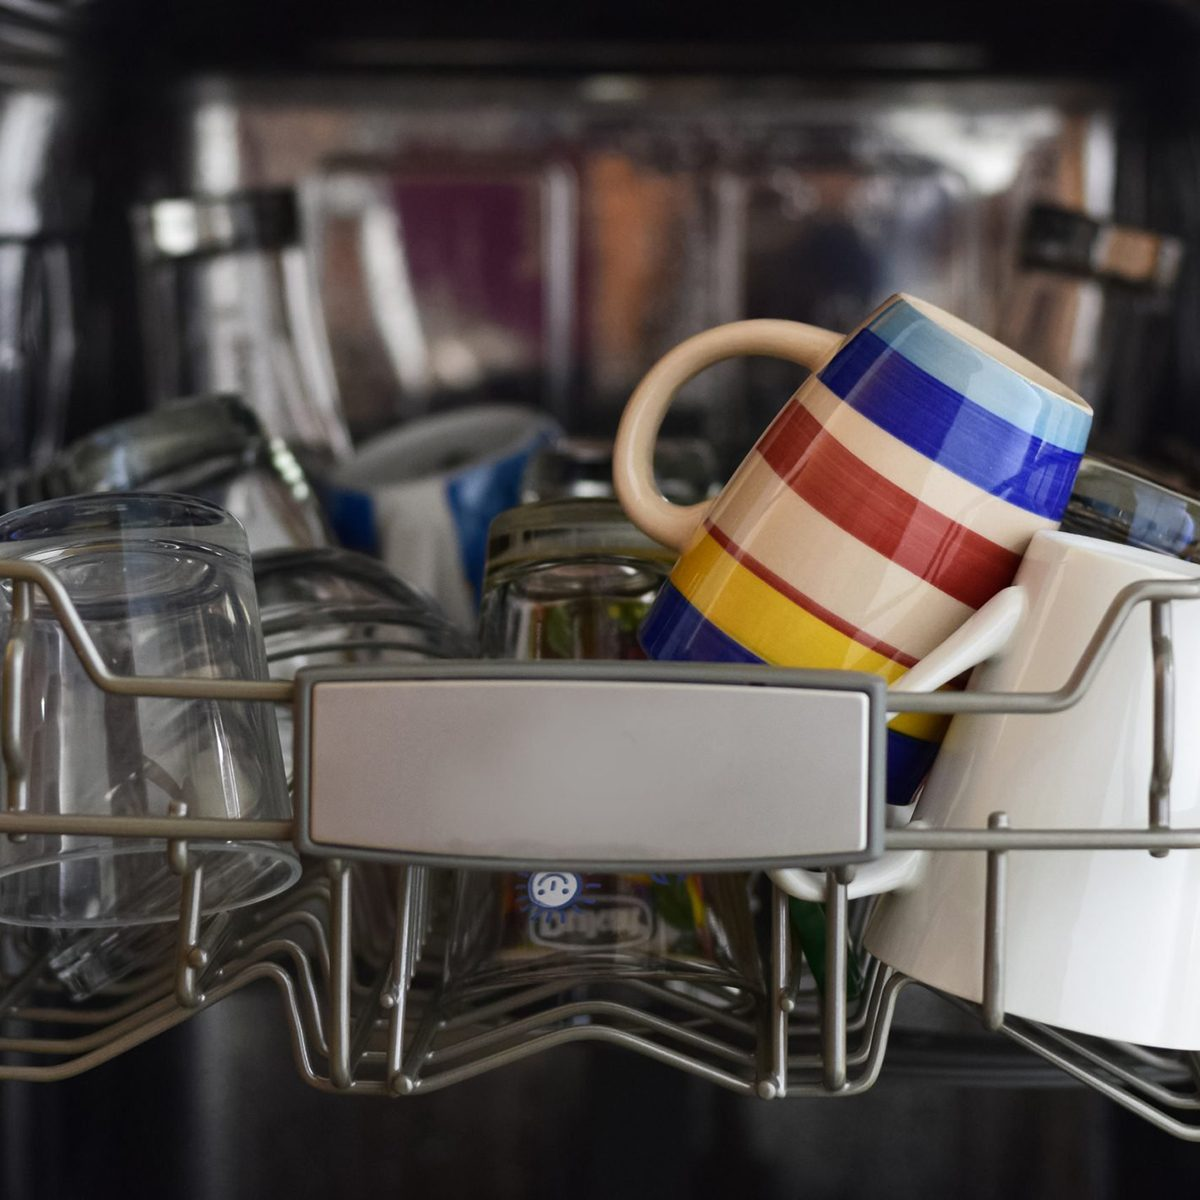 A close up of the top most rack of a dishwasher filled with glasses and cups